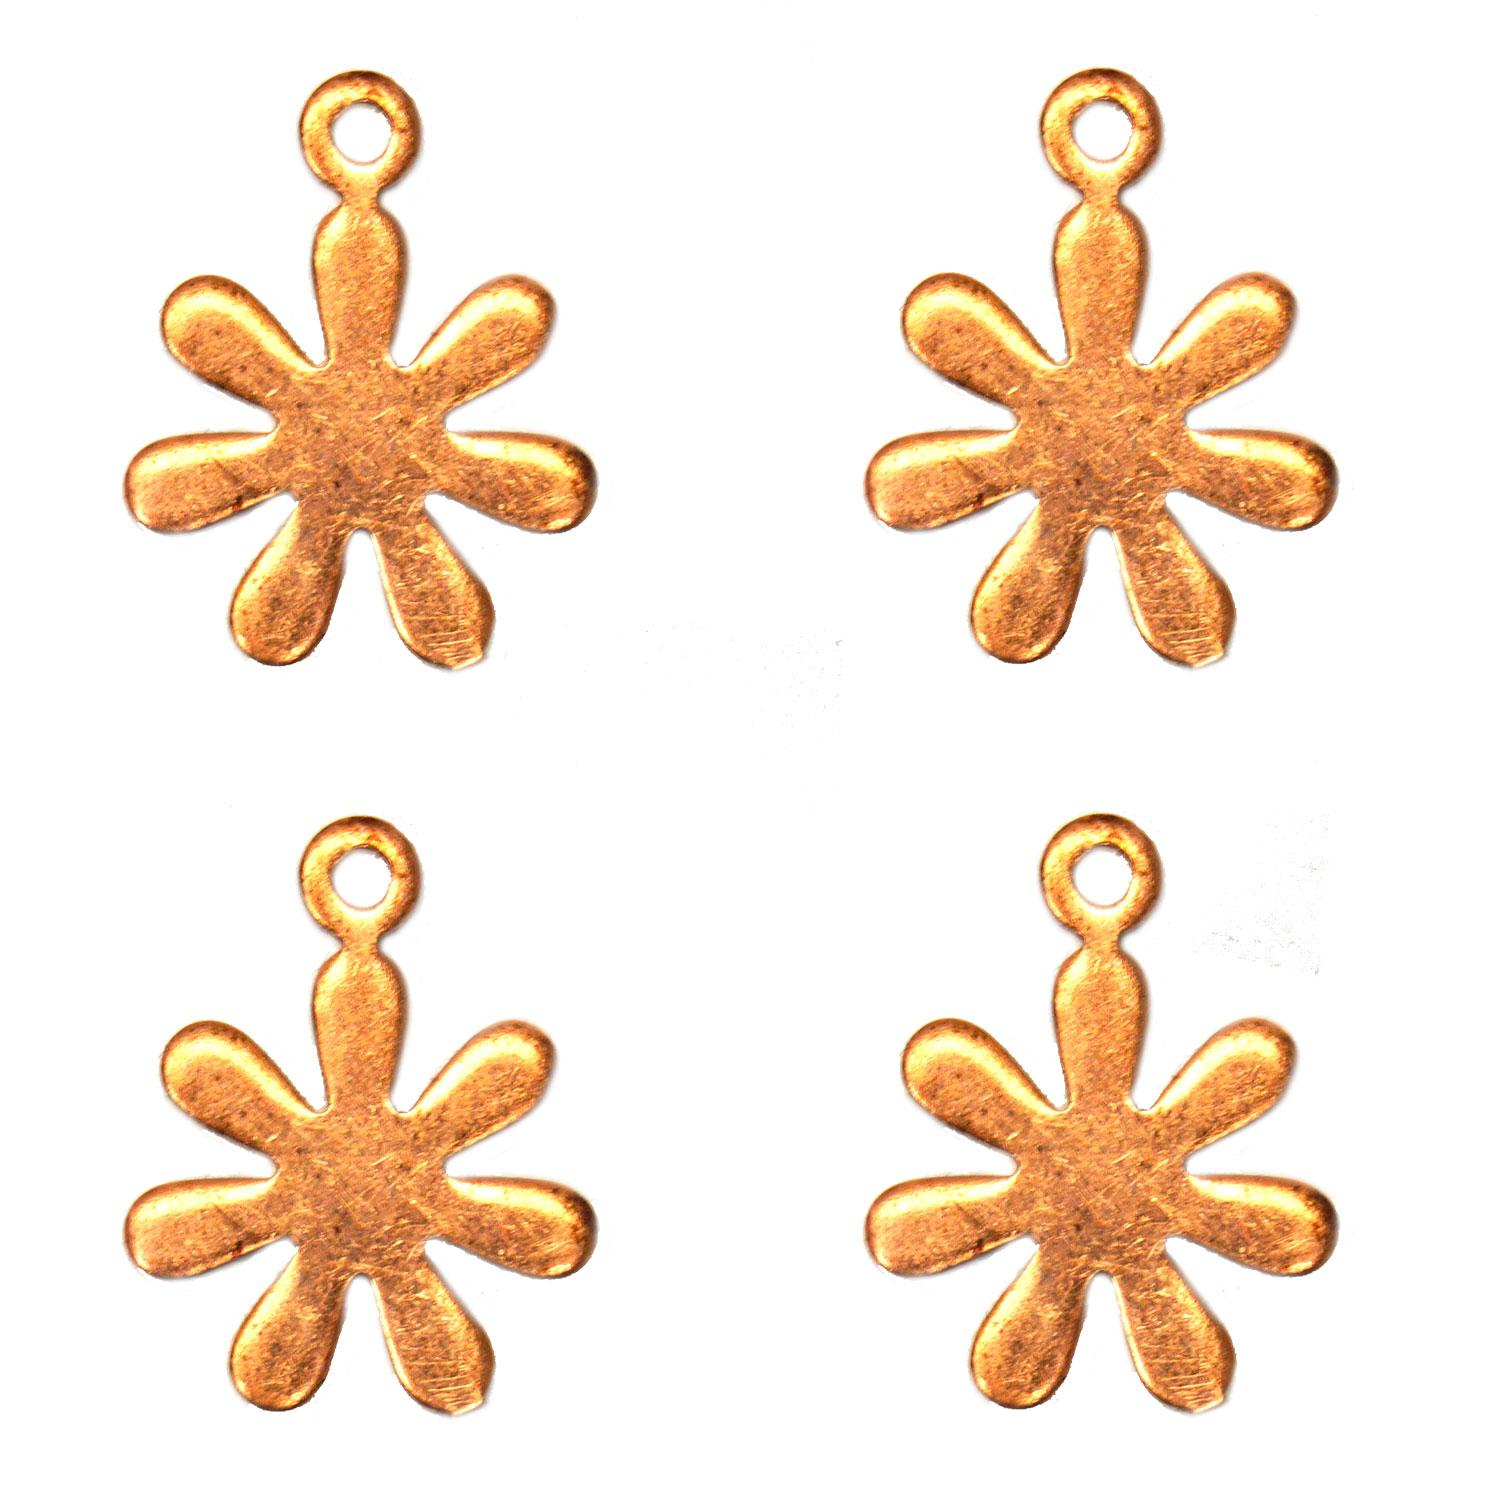 Small Daisy Copper Shape with Tab - 4 Pack